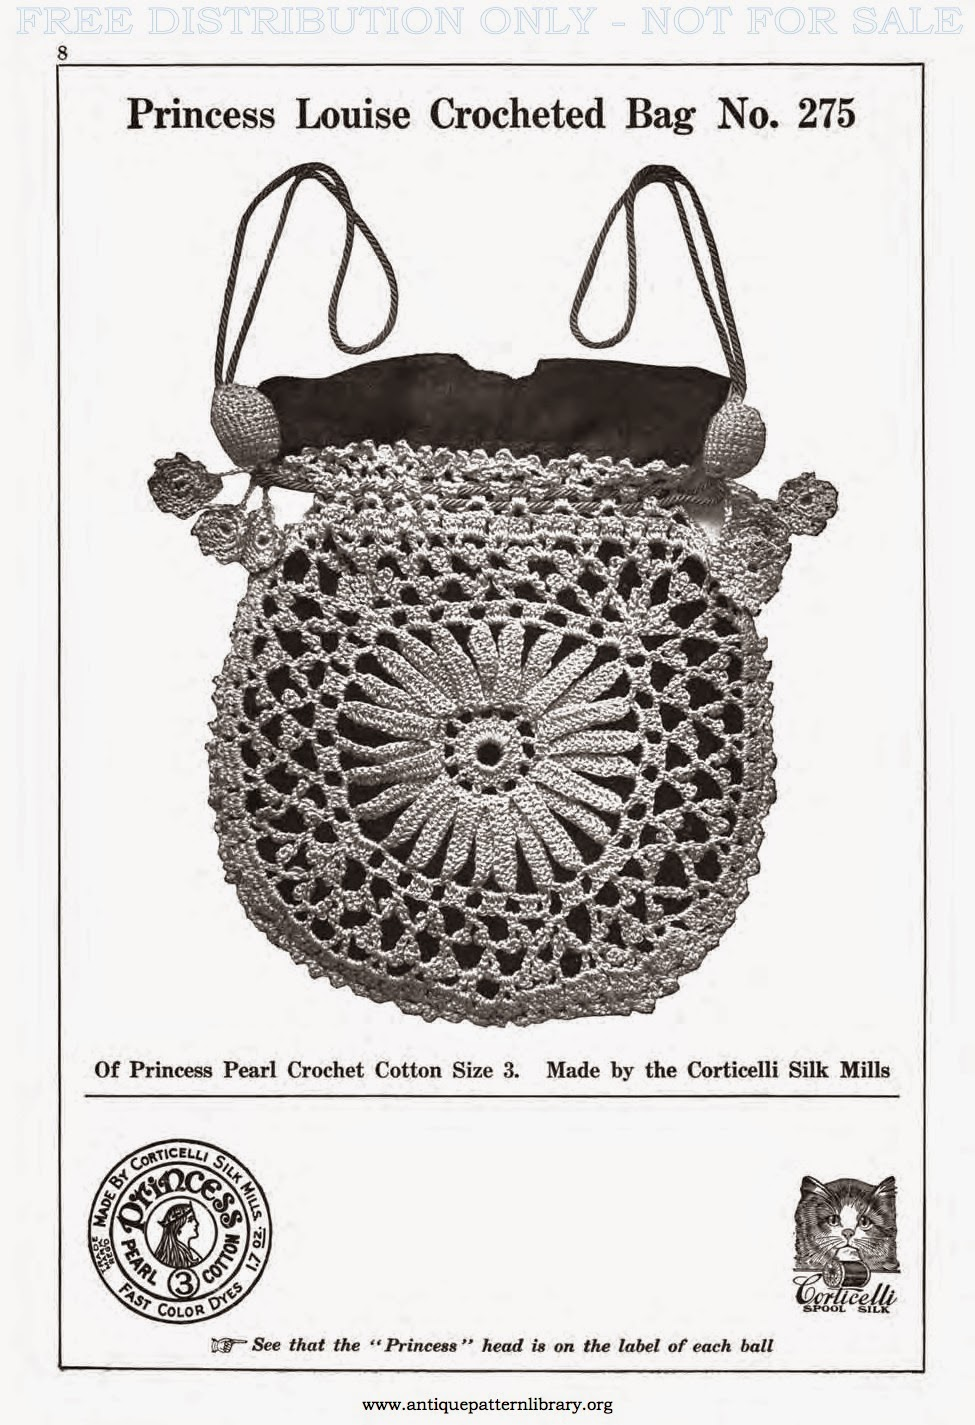 Crochetology by Fatima: Princess Louise Bag 1917